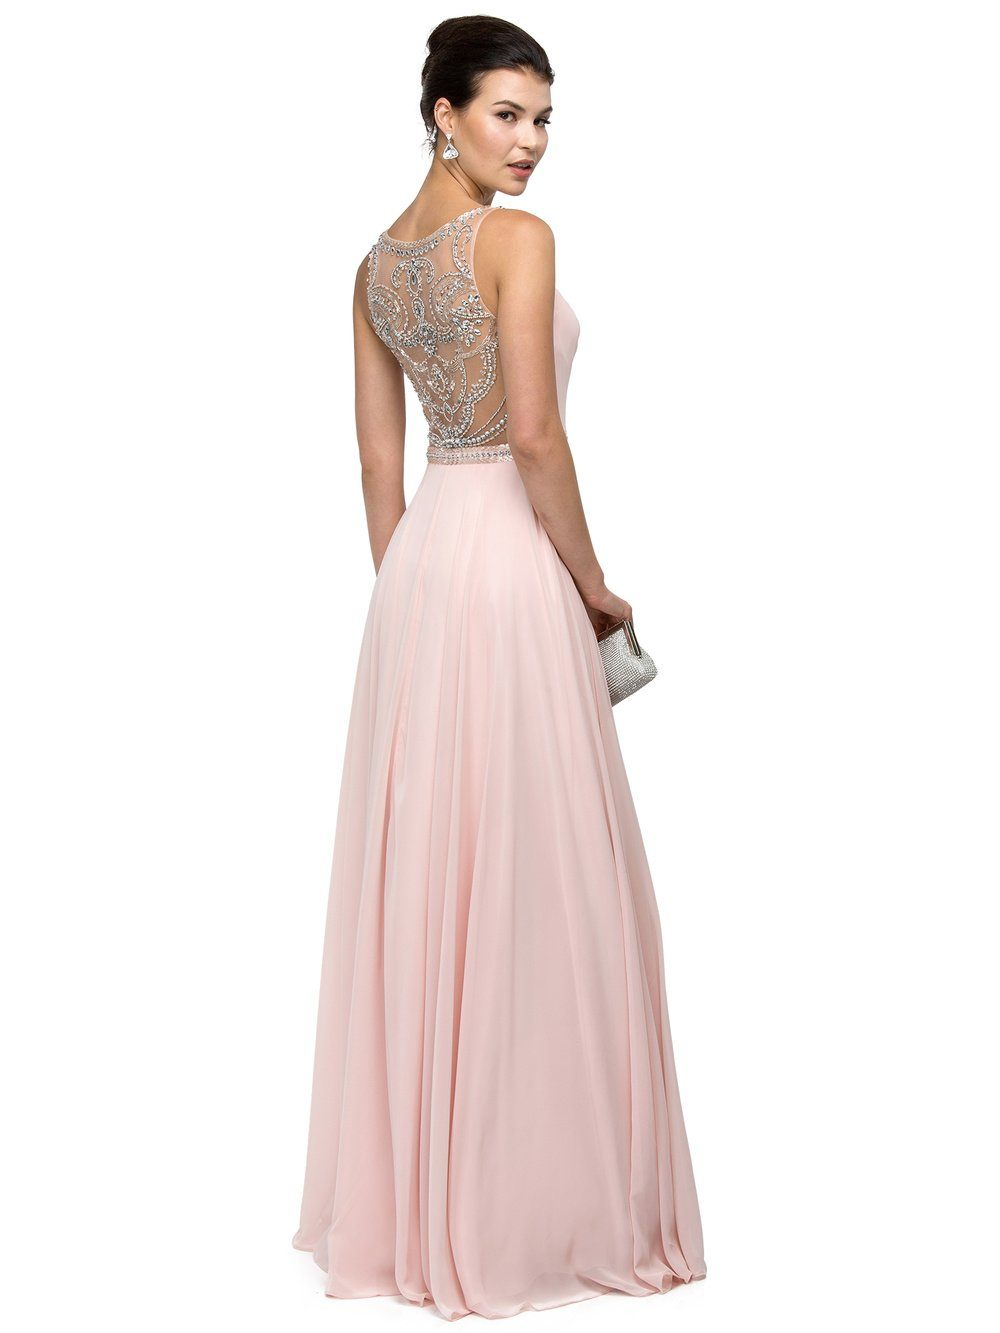 Sheer illusion sparkly prom dress DQ9594 - CLOSEOUT – Simply Fab Dress